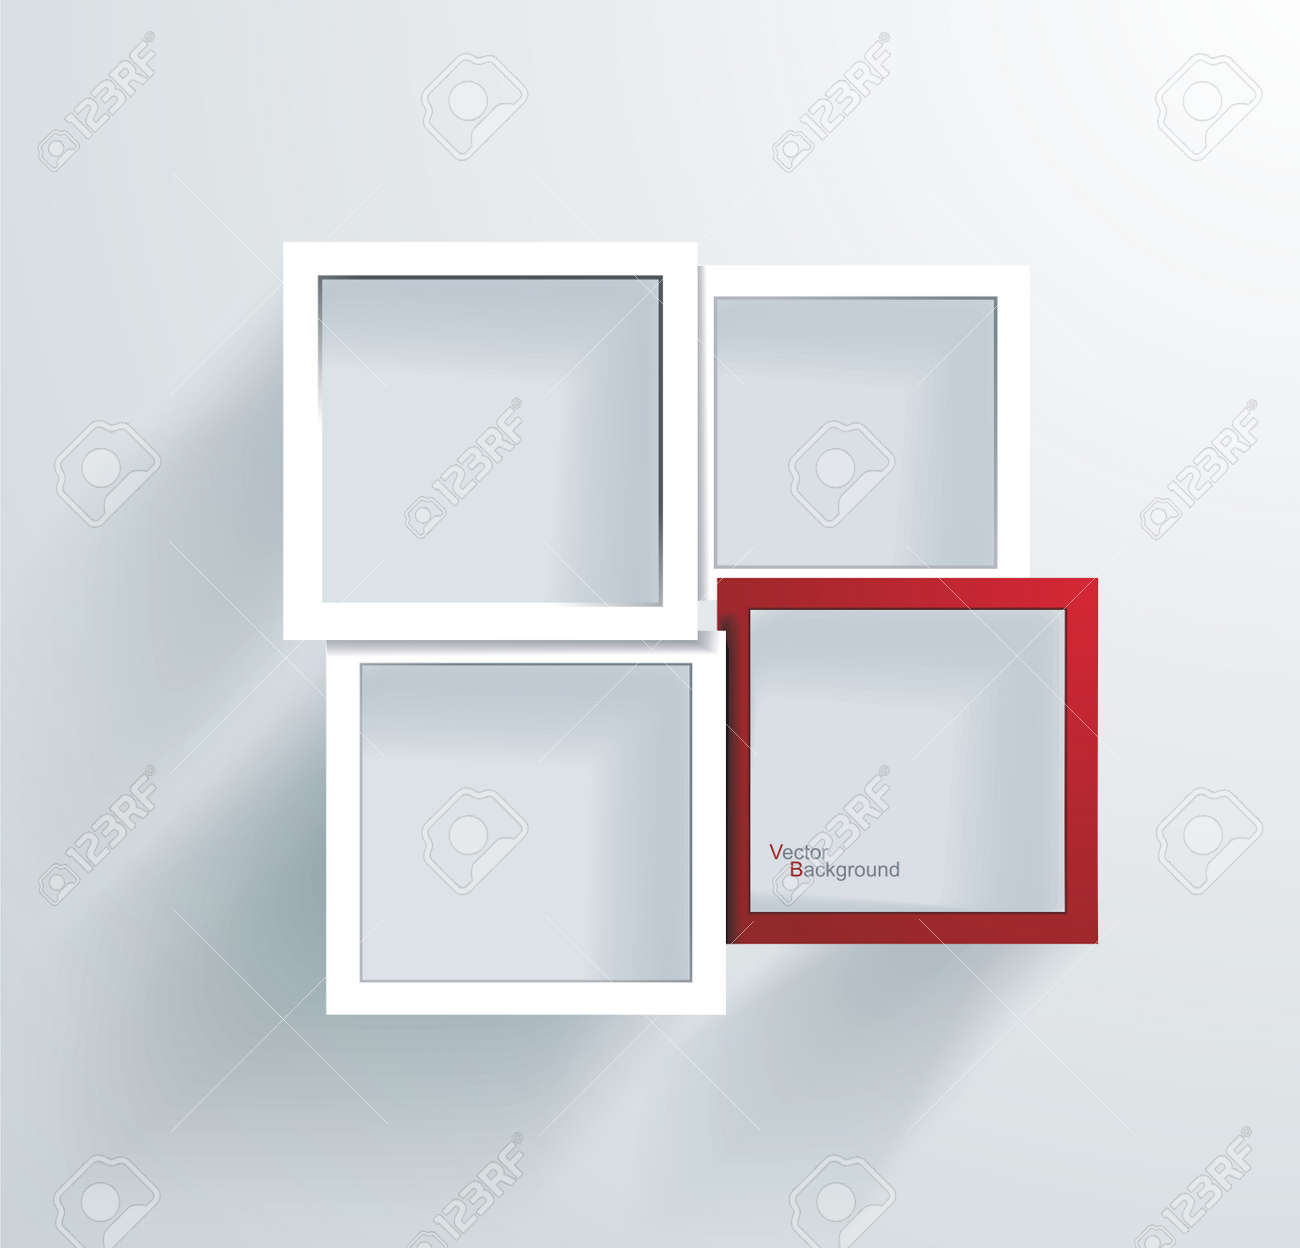 Paper Frames Abstract 3D Geometrical Design Royalty Free Cliparts ...